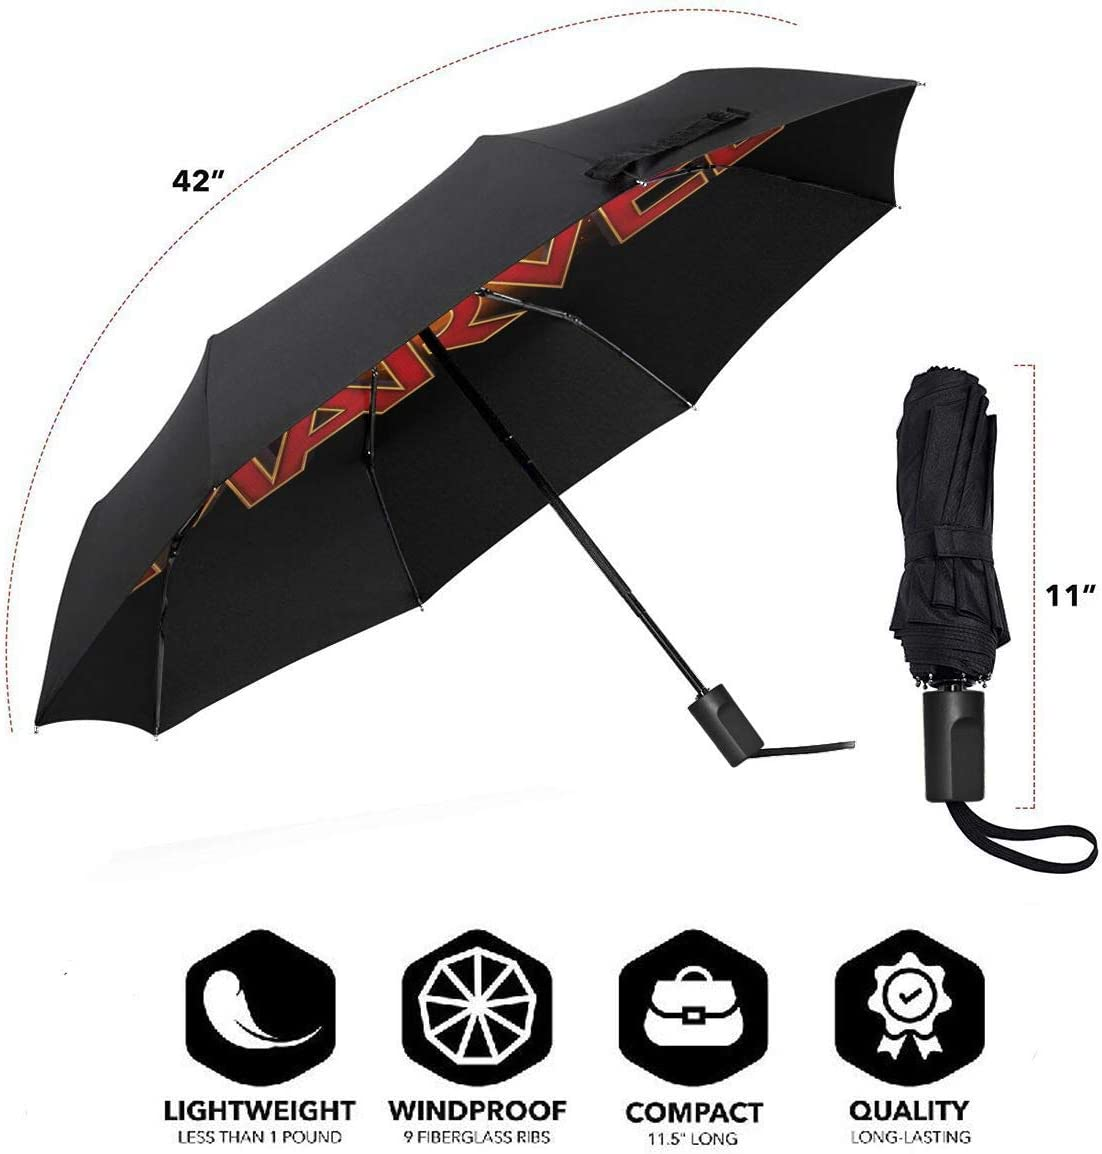 So-nic The Hedgehog Reverse Windproof Umbrella UV Protection Upside Down Umbrella Double Layer Inverted Umbrella With C-Shaped Handle